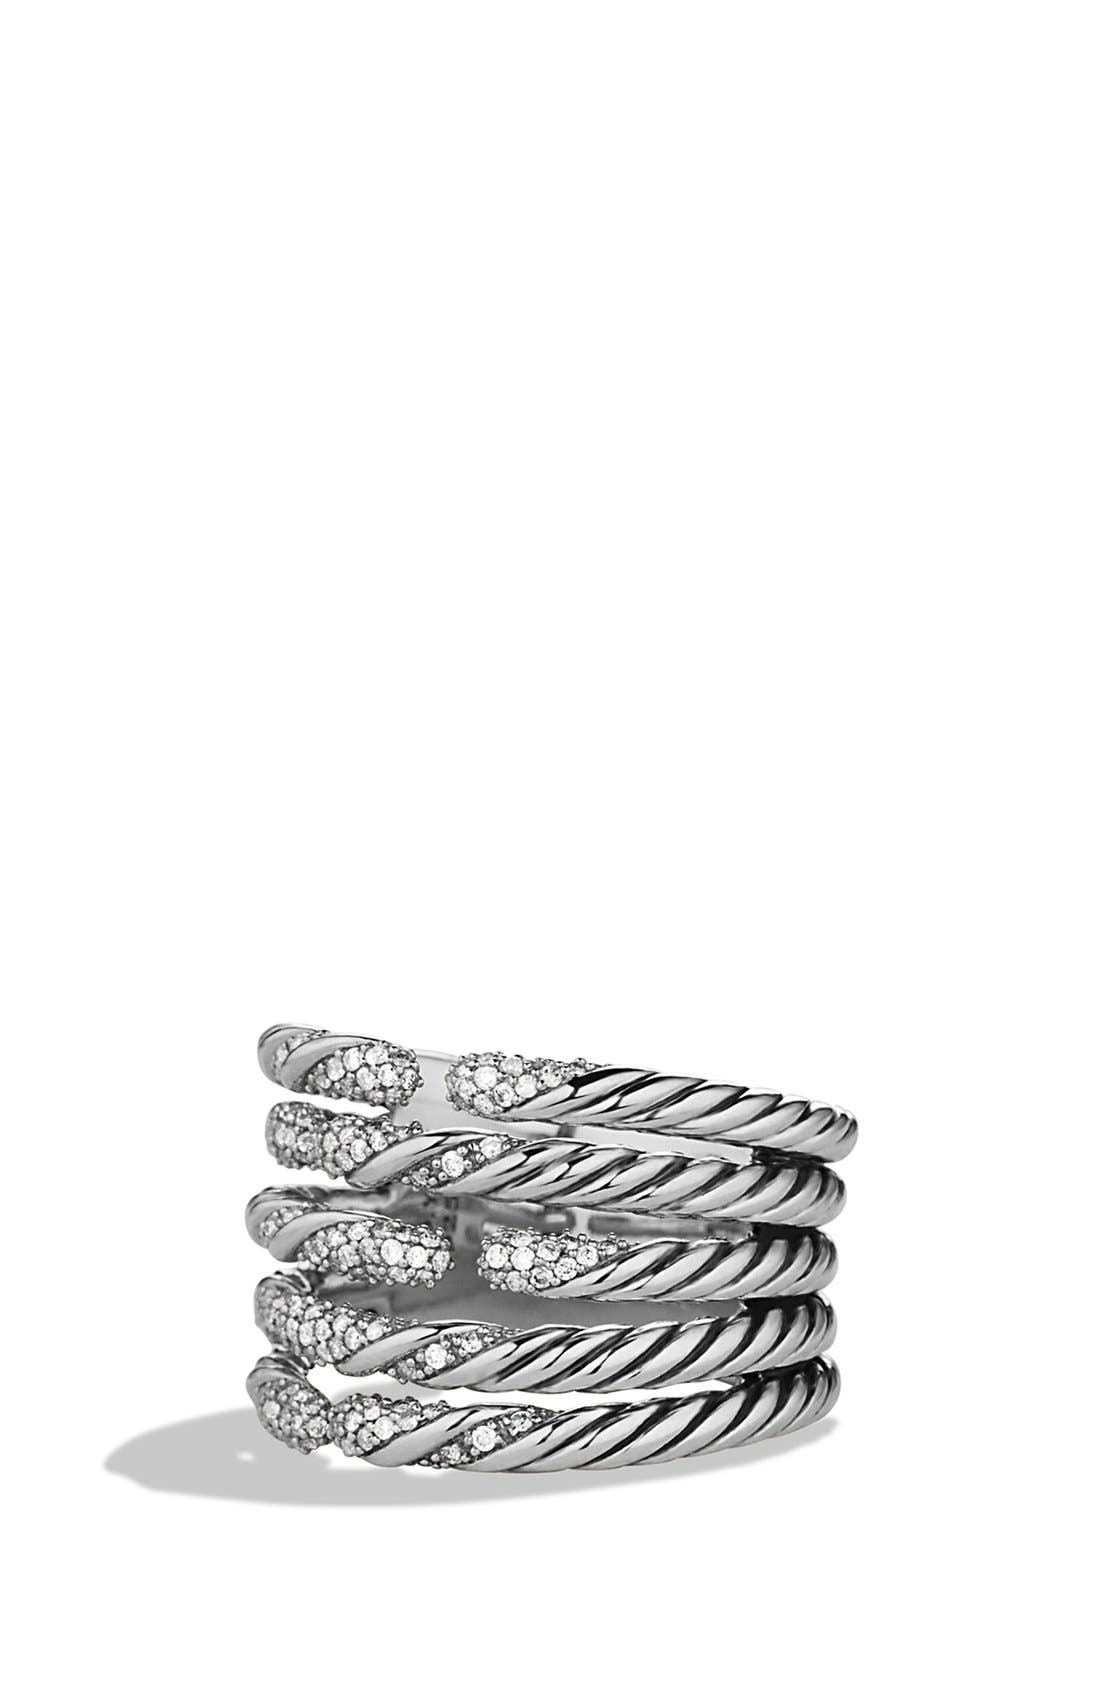 'Willow' Five-Row Ring with Diamonds,                             Main thumbnail 1, color,                             Diamond